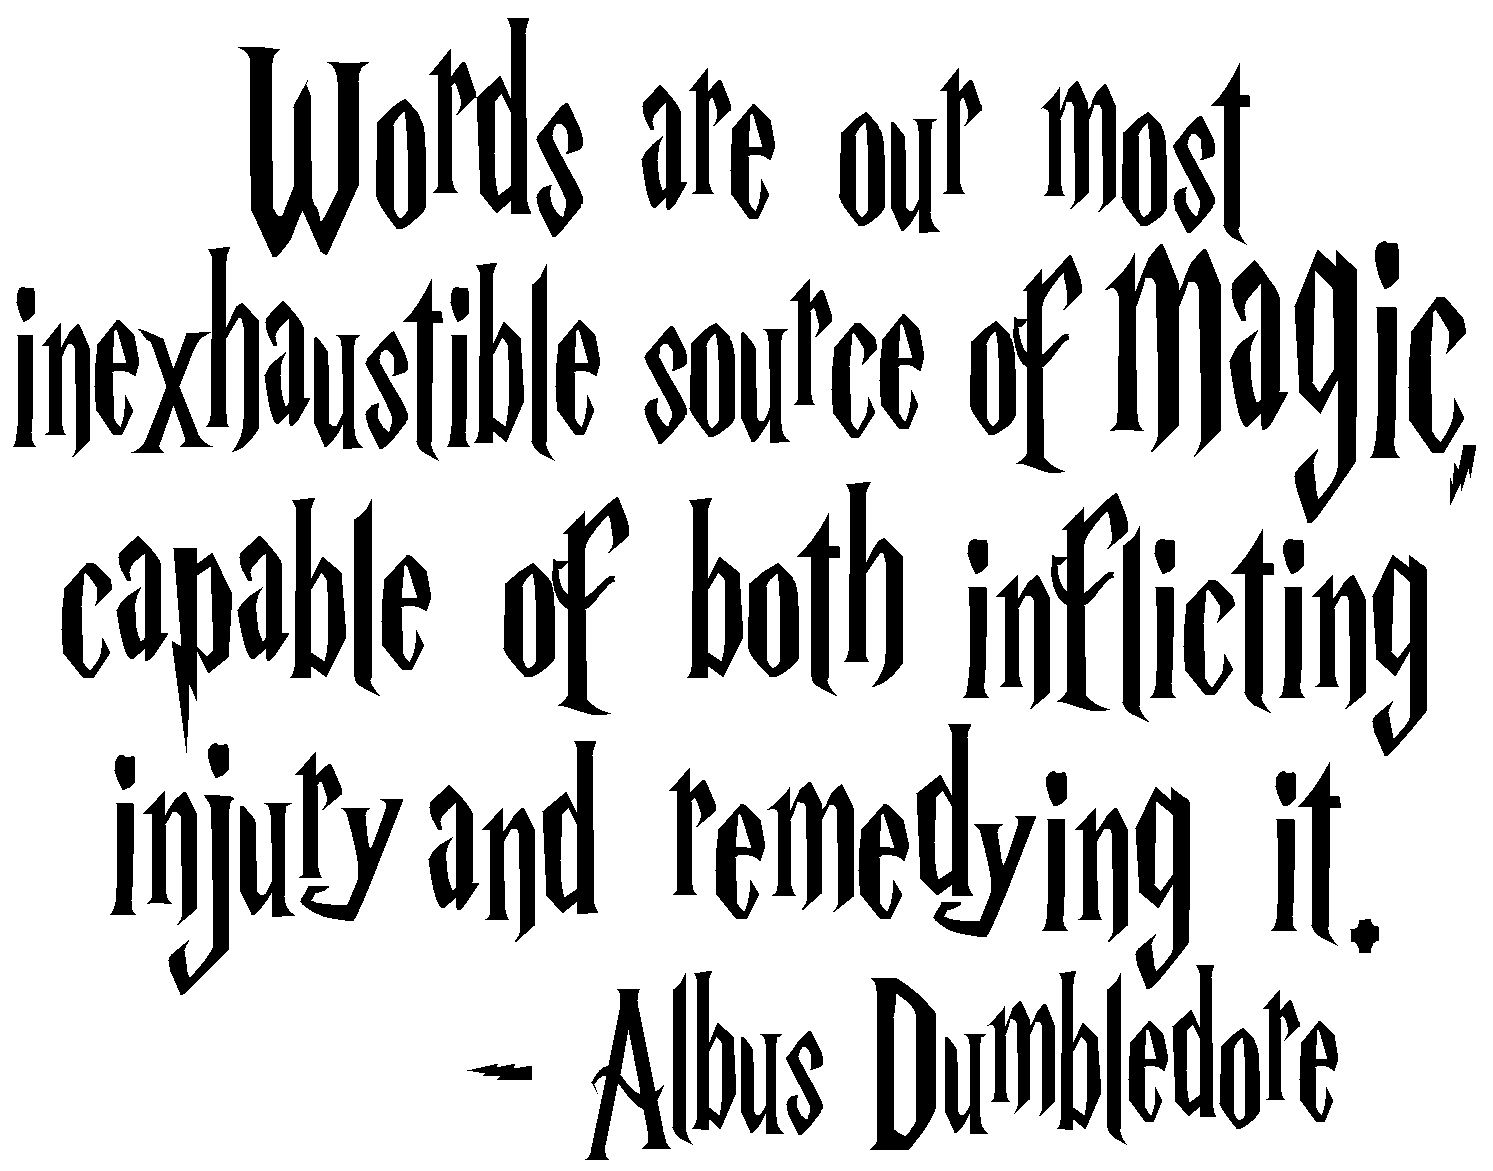 Words are our most inexhaustible source of magic